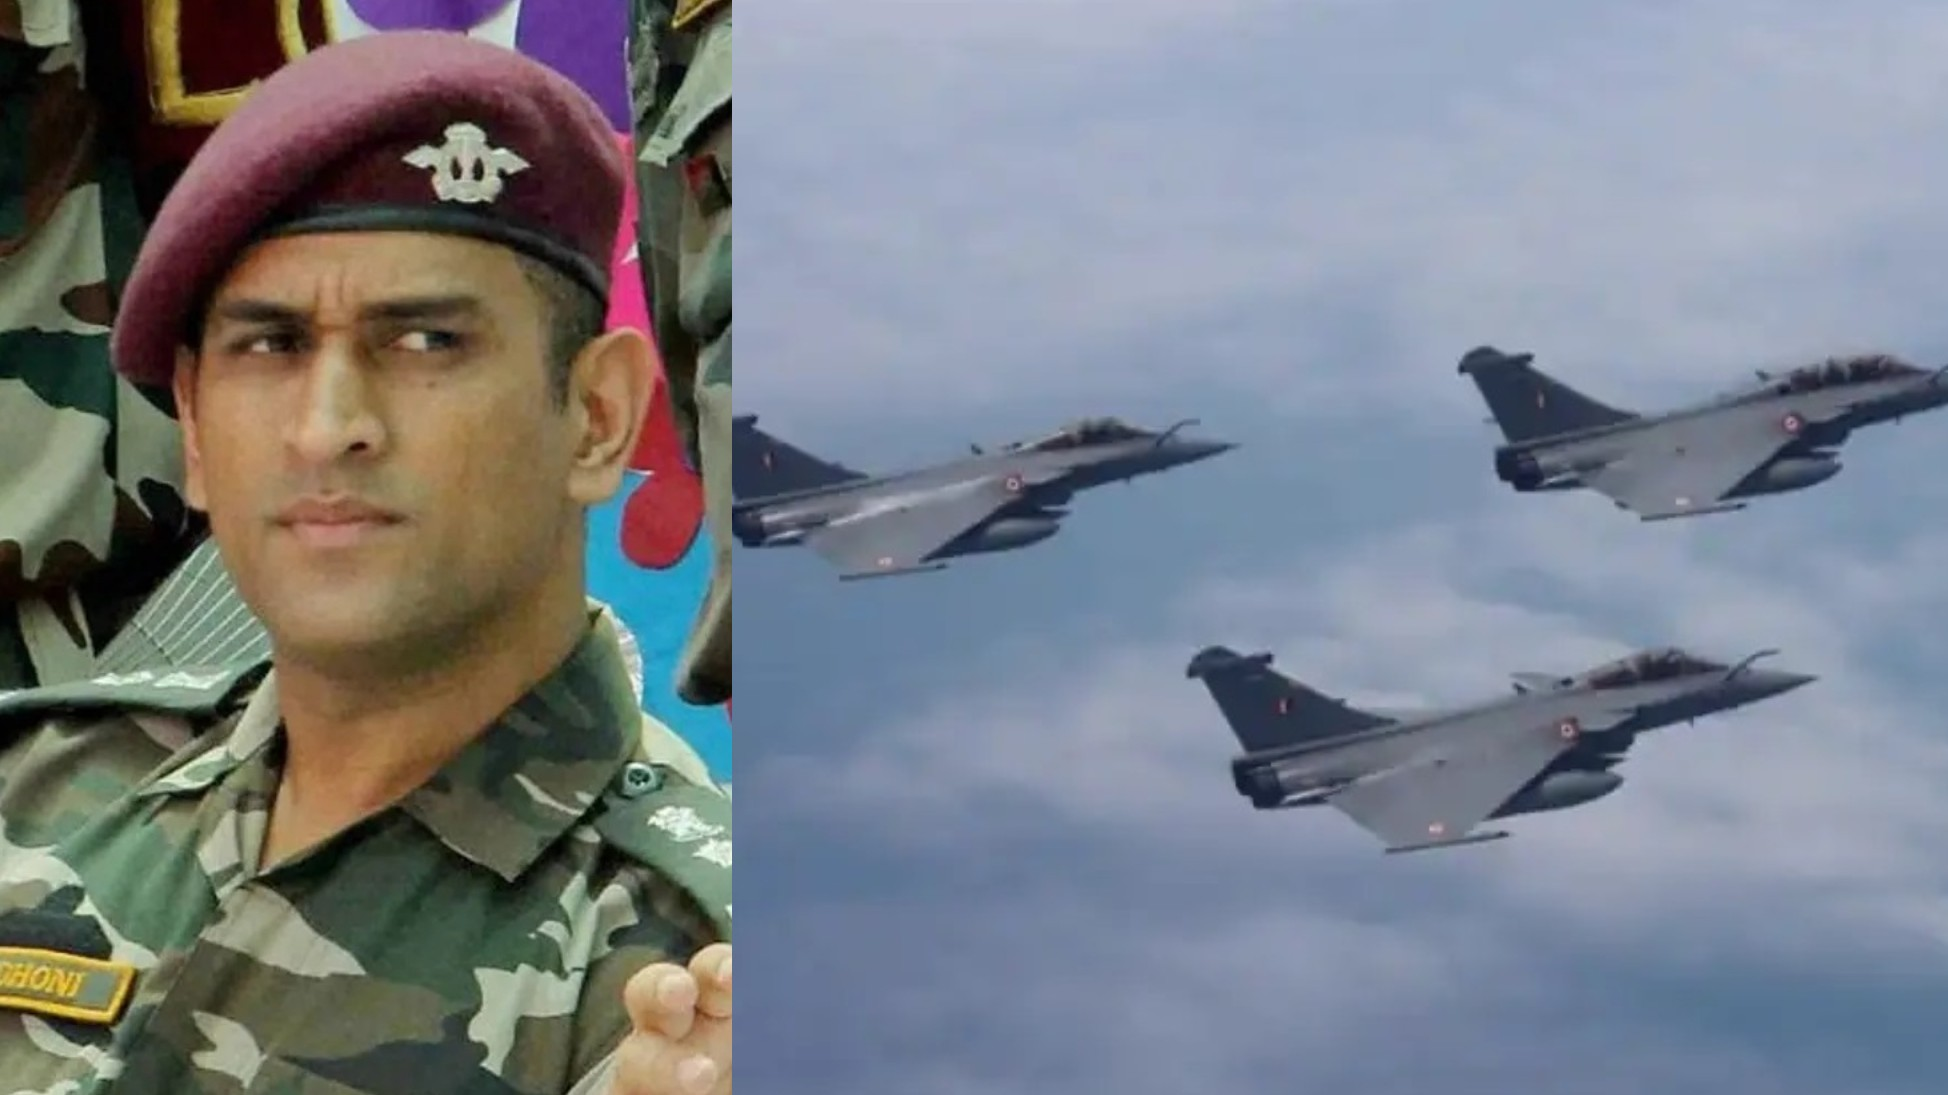 MS Dhoni hails Rafale's induction in the Indian Air Force; says Sukhoi remains his favorite